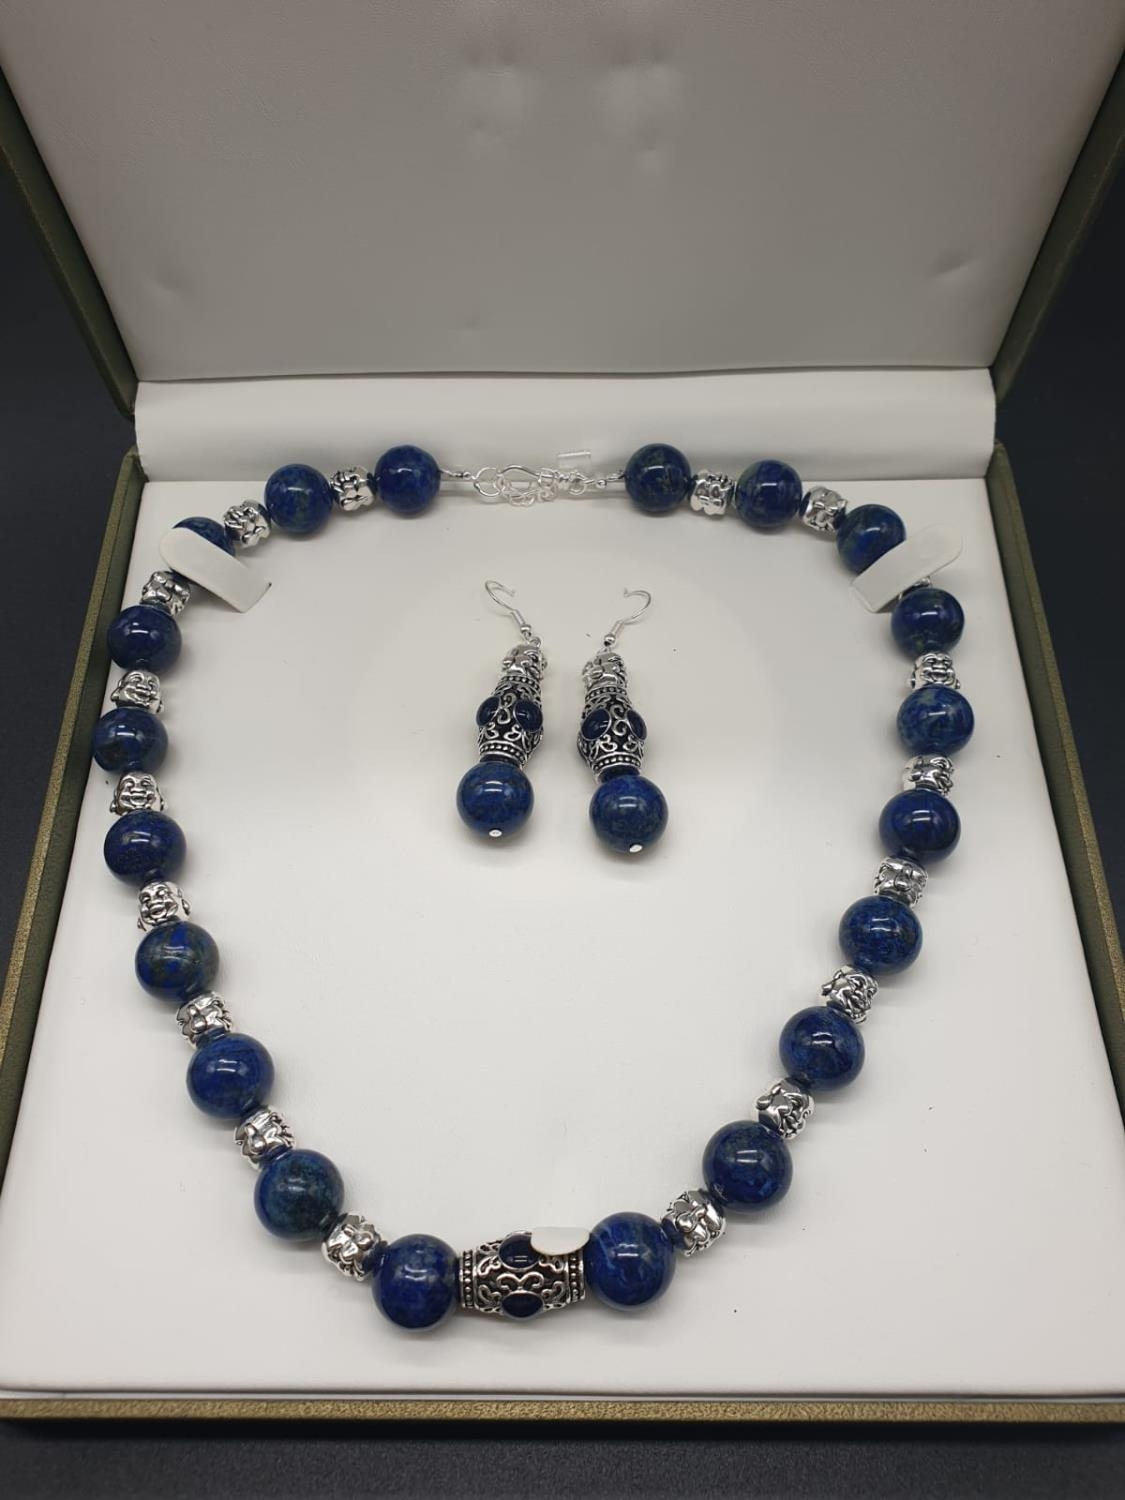 A Tibetan Buddhist lapis lazuli necklace and earrings set in a presentation box. Necklace length: - Image 11 of 11